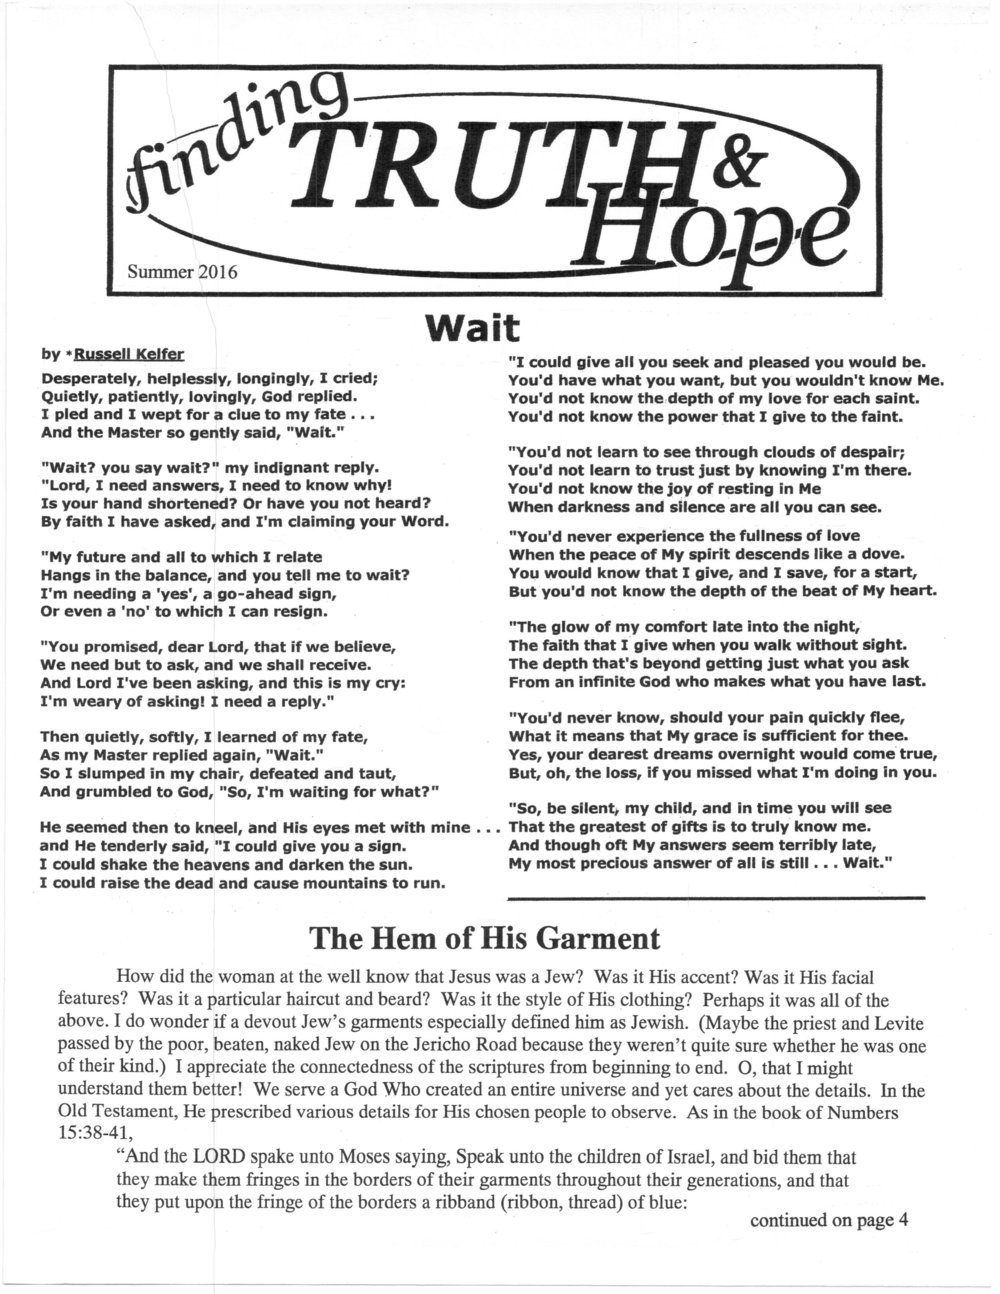 Finding Truth and Hope: Issue #6 (Summer 2016)